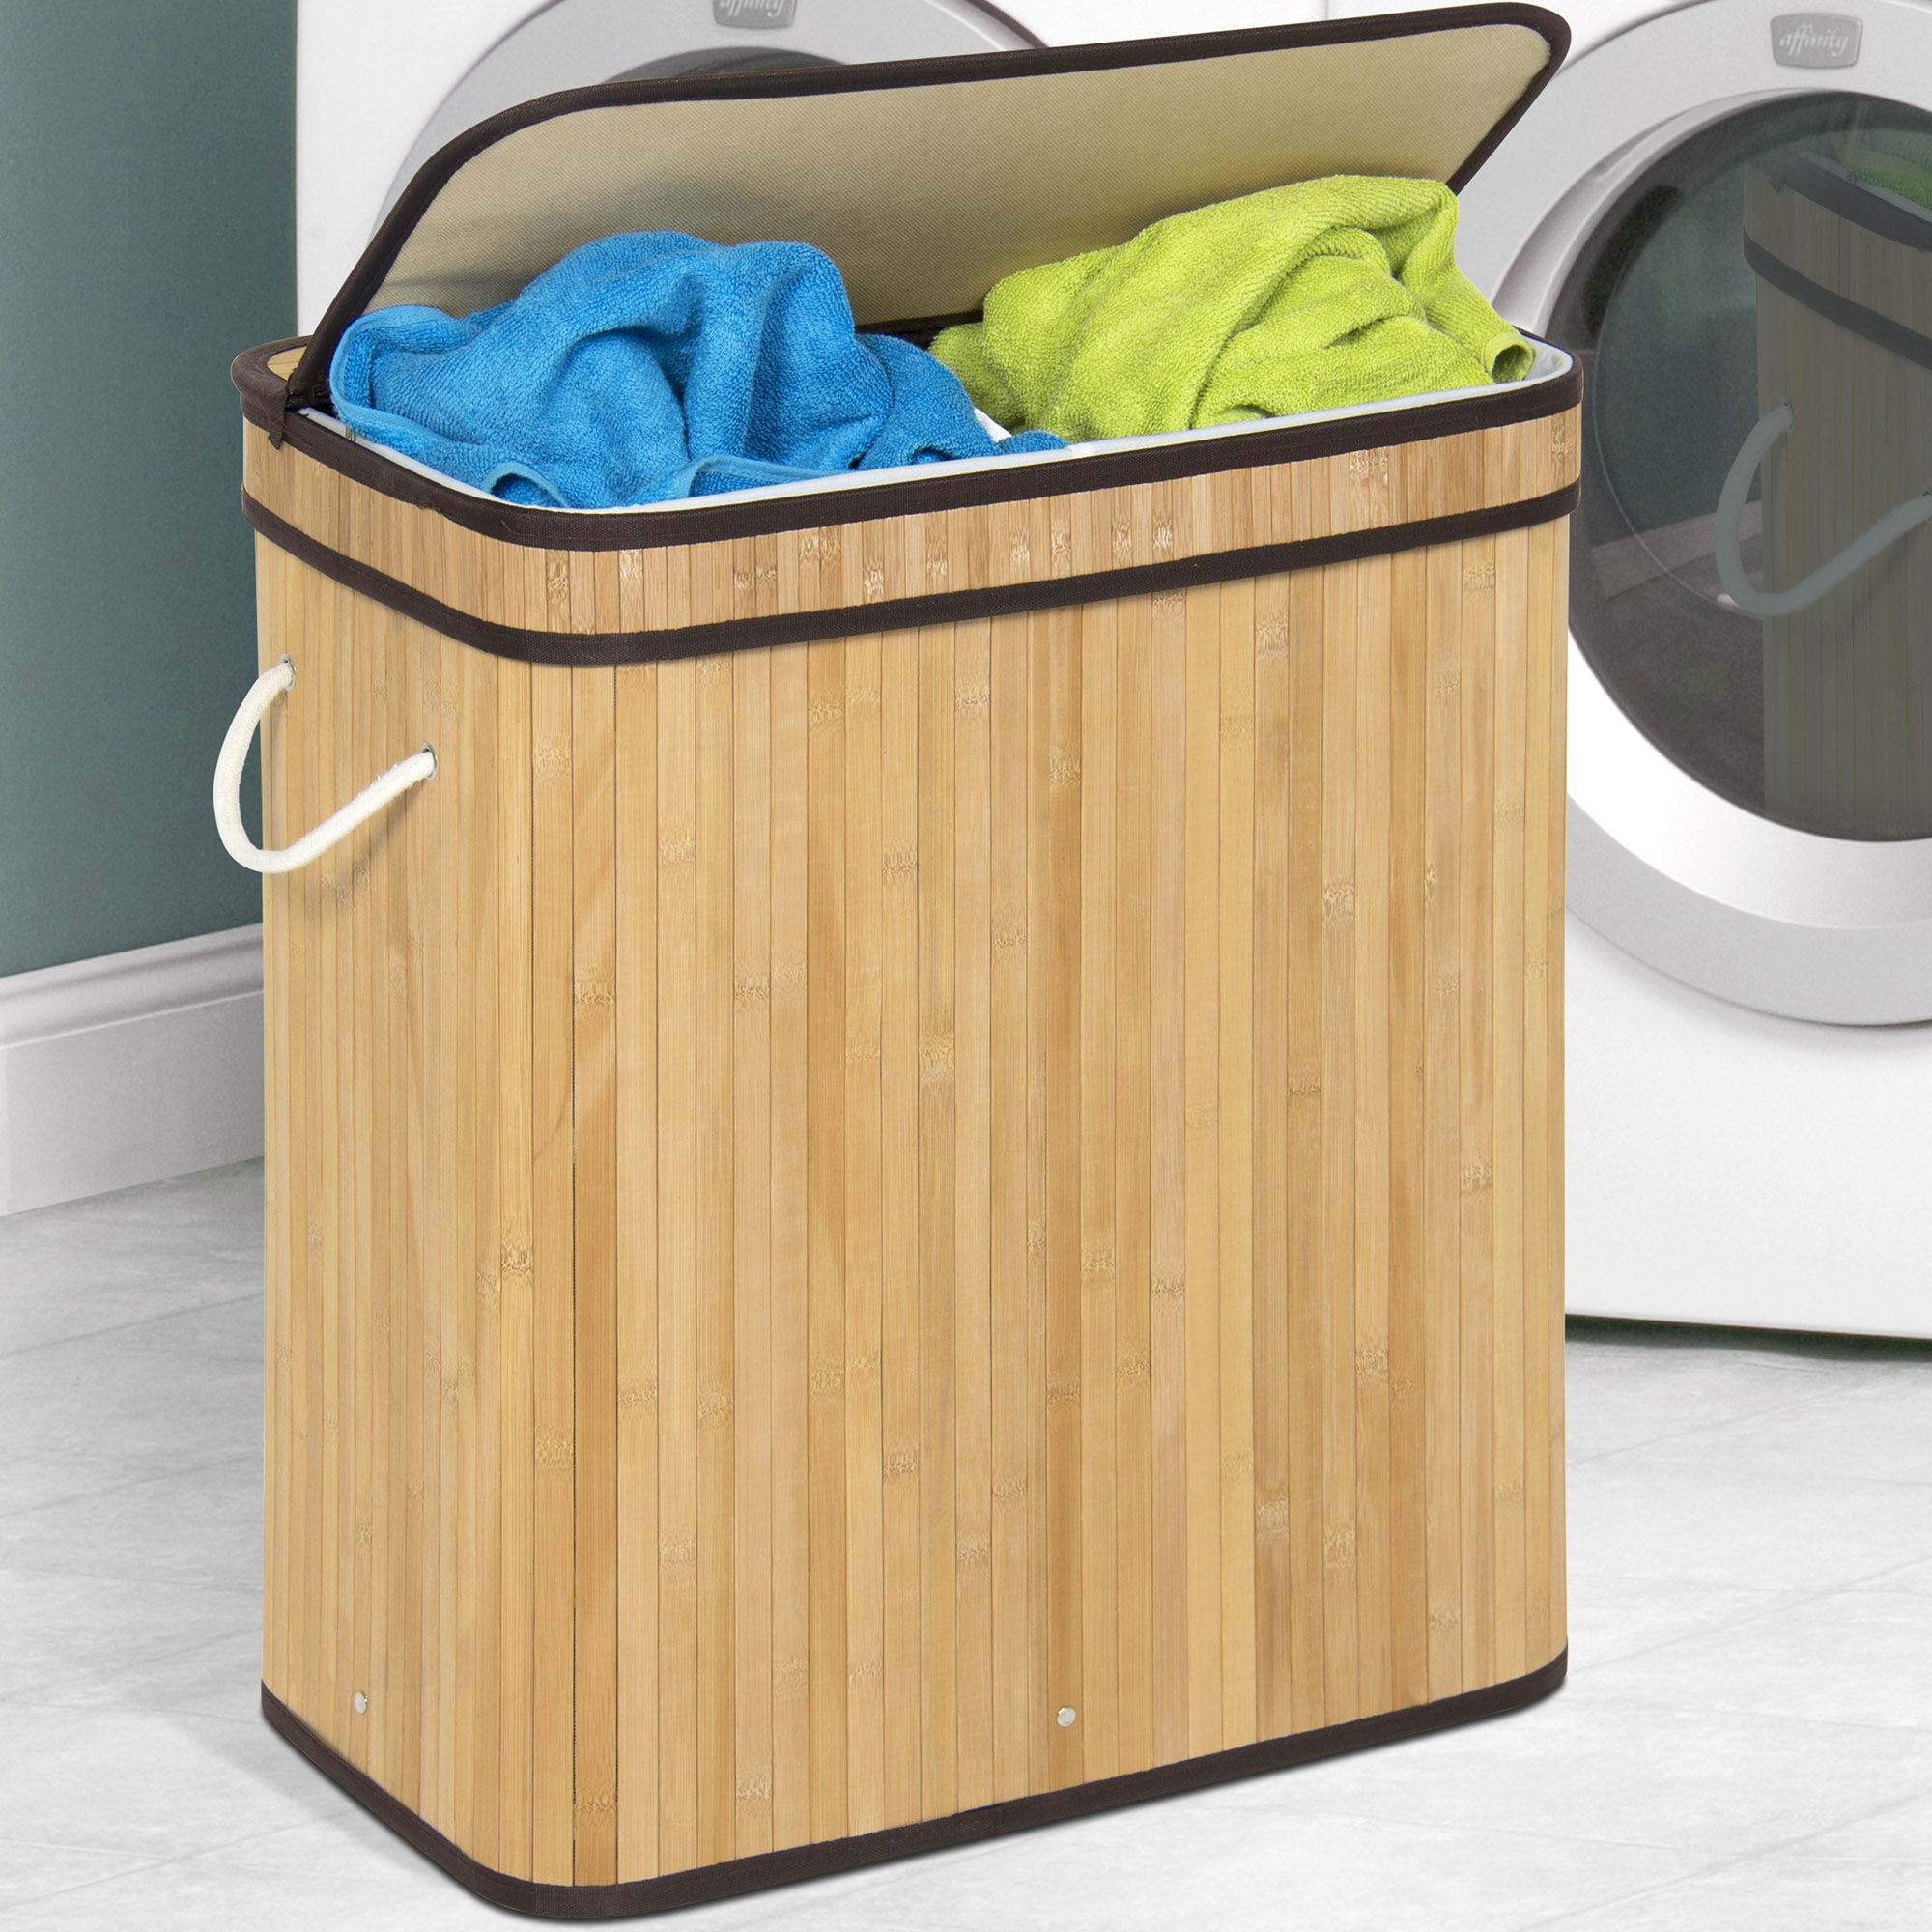 Best Choice Products Foldable Double Section Bamboo Hamper Laundry Basket w/ Removable Liner Bag - Natural